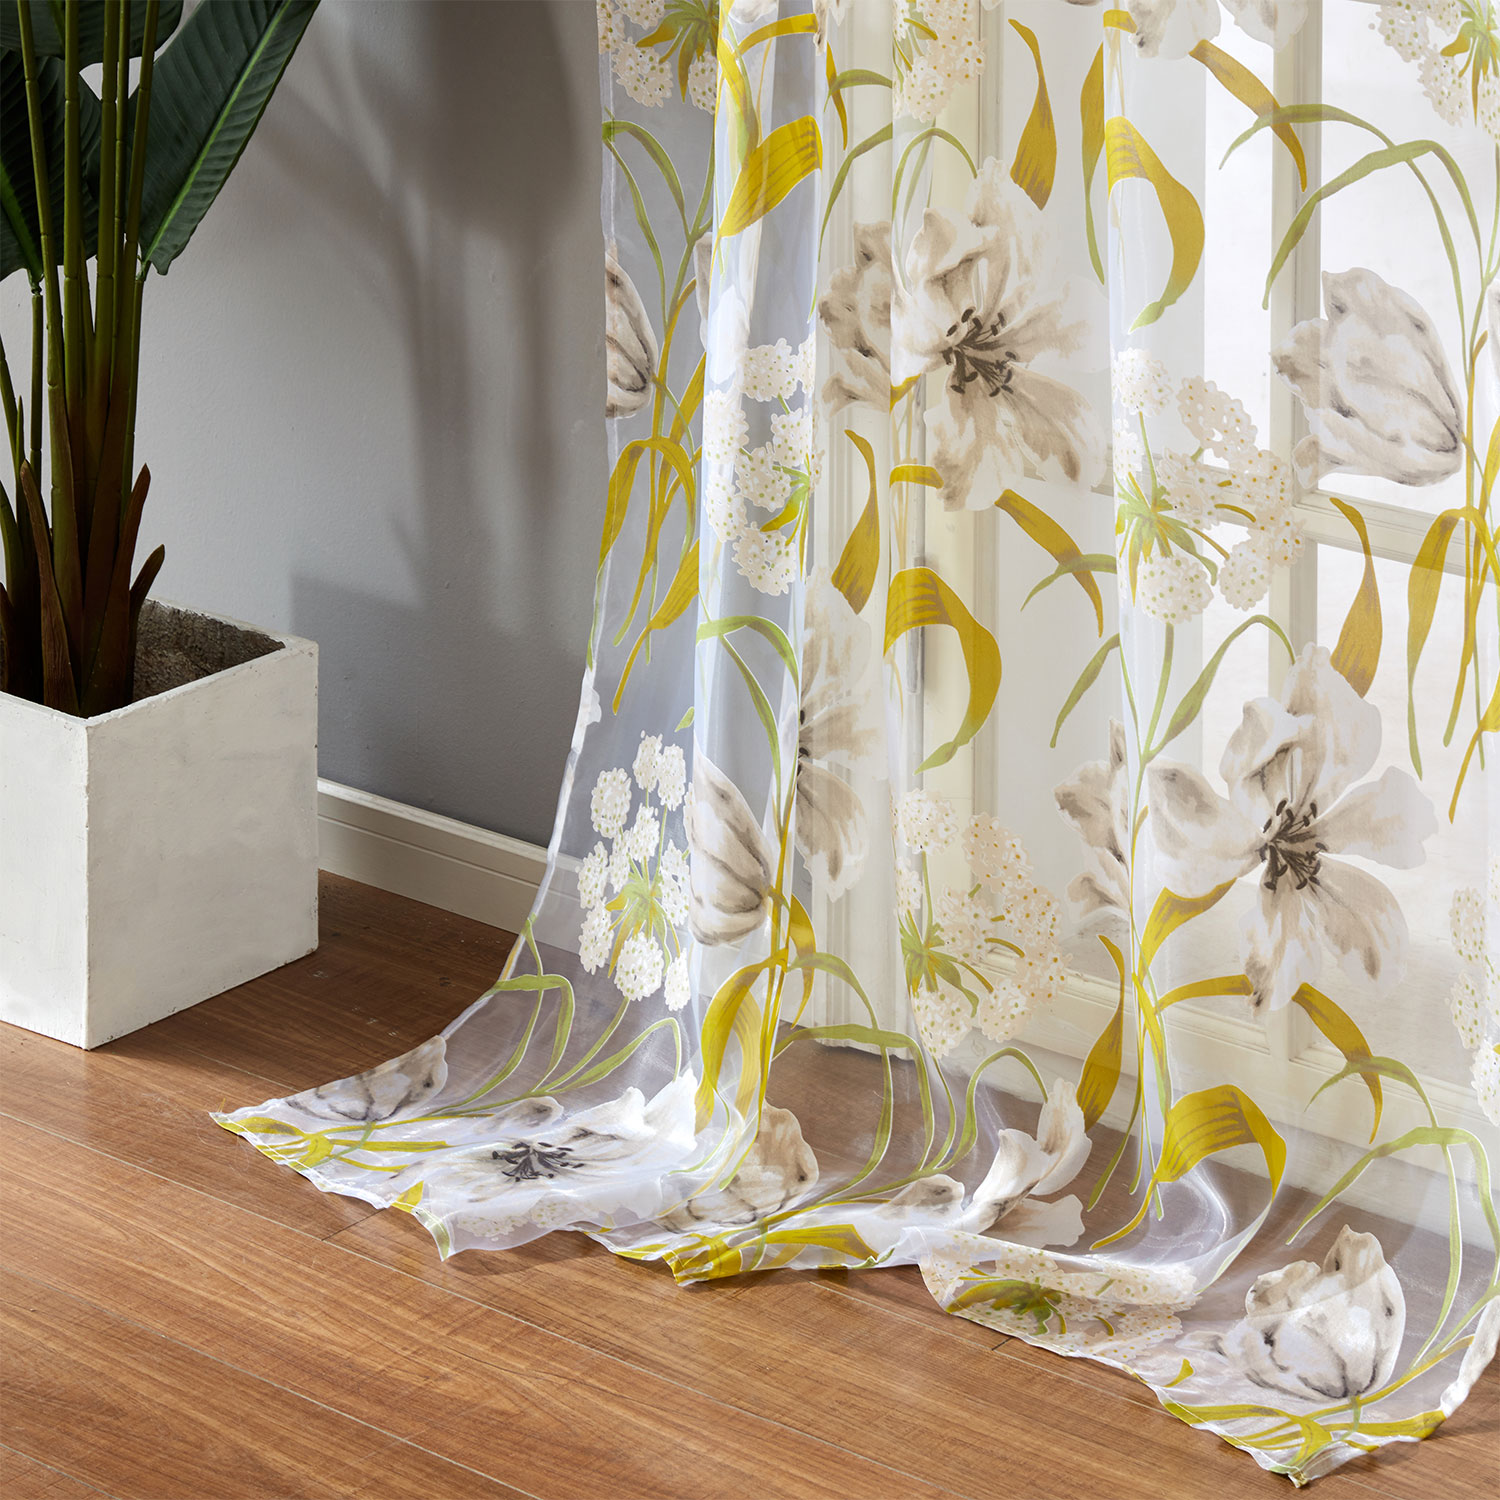 YokiSTG Voile Tulle Curtains Tropical Flower Leaf Curtains For Living Room Kitchen Curtains Bedroom Window Treatment Tulle Drape